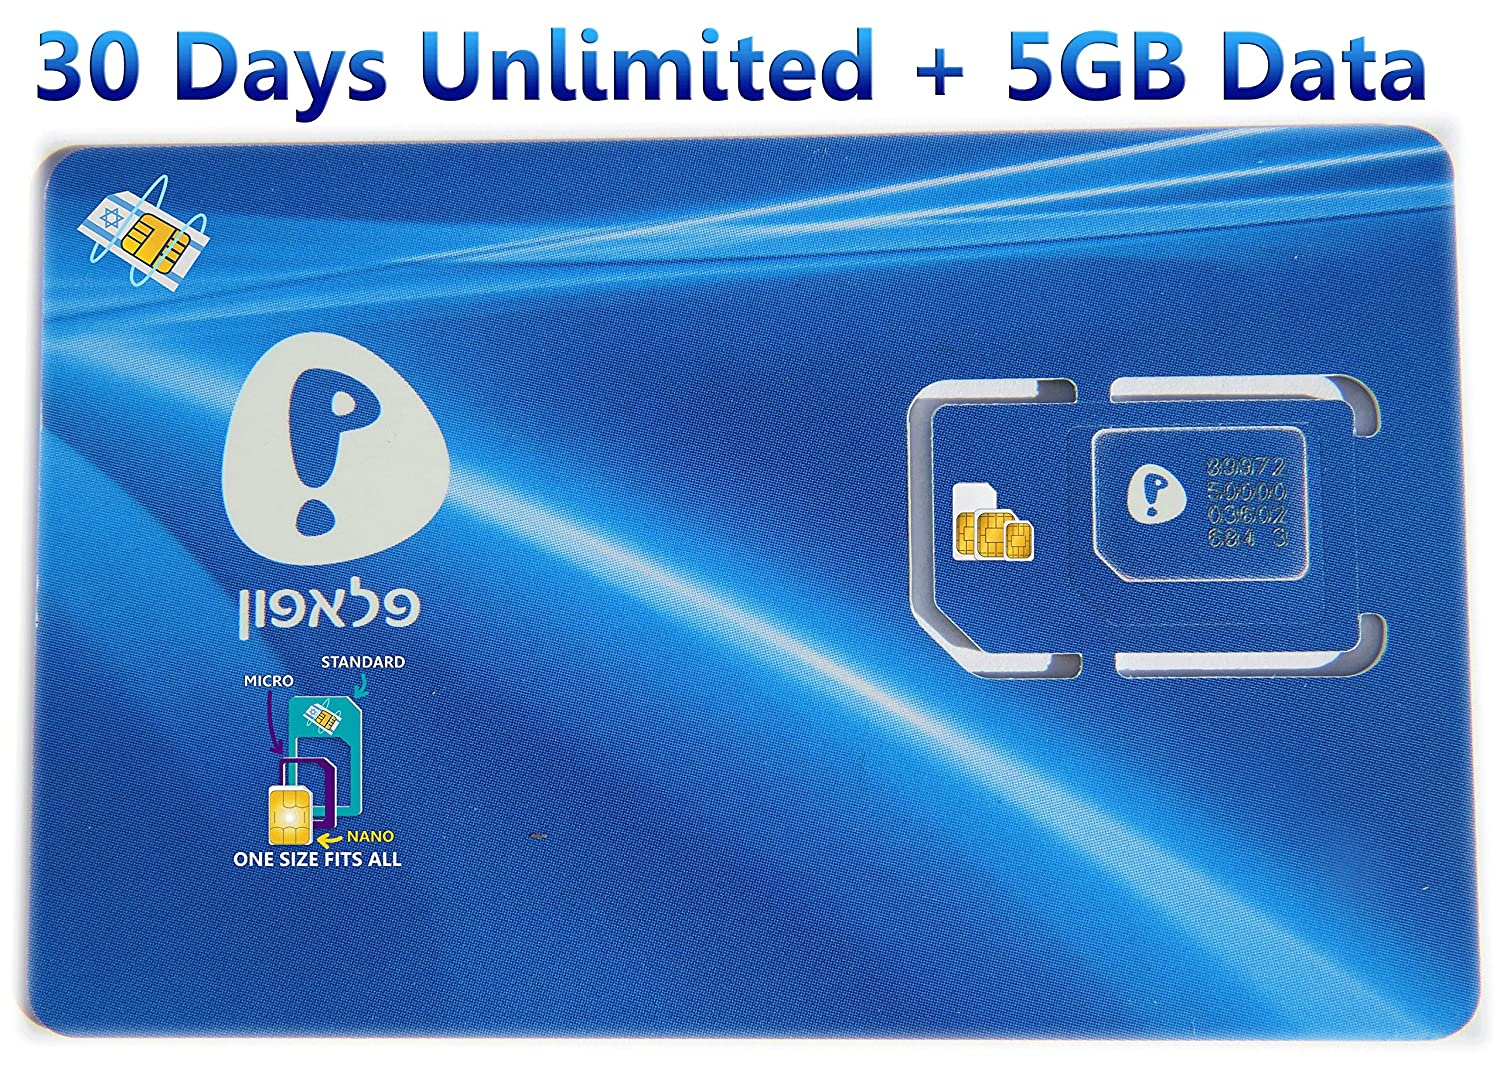 Israel Prepaid SIM Card From Pelephone, Including 30 Days Unlimited Calls & SMS in Israel + 5GB Data, Triple SIM 3 in 1 For Any Size SIM Mini Micro Nano + SIM Card Case Iphone Pin & User Guide